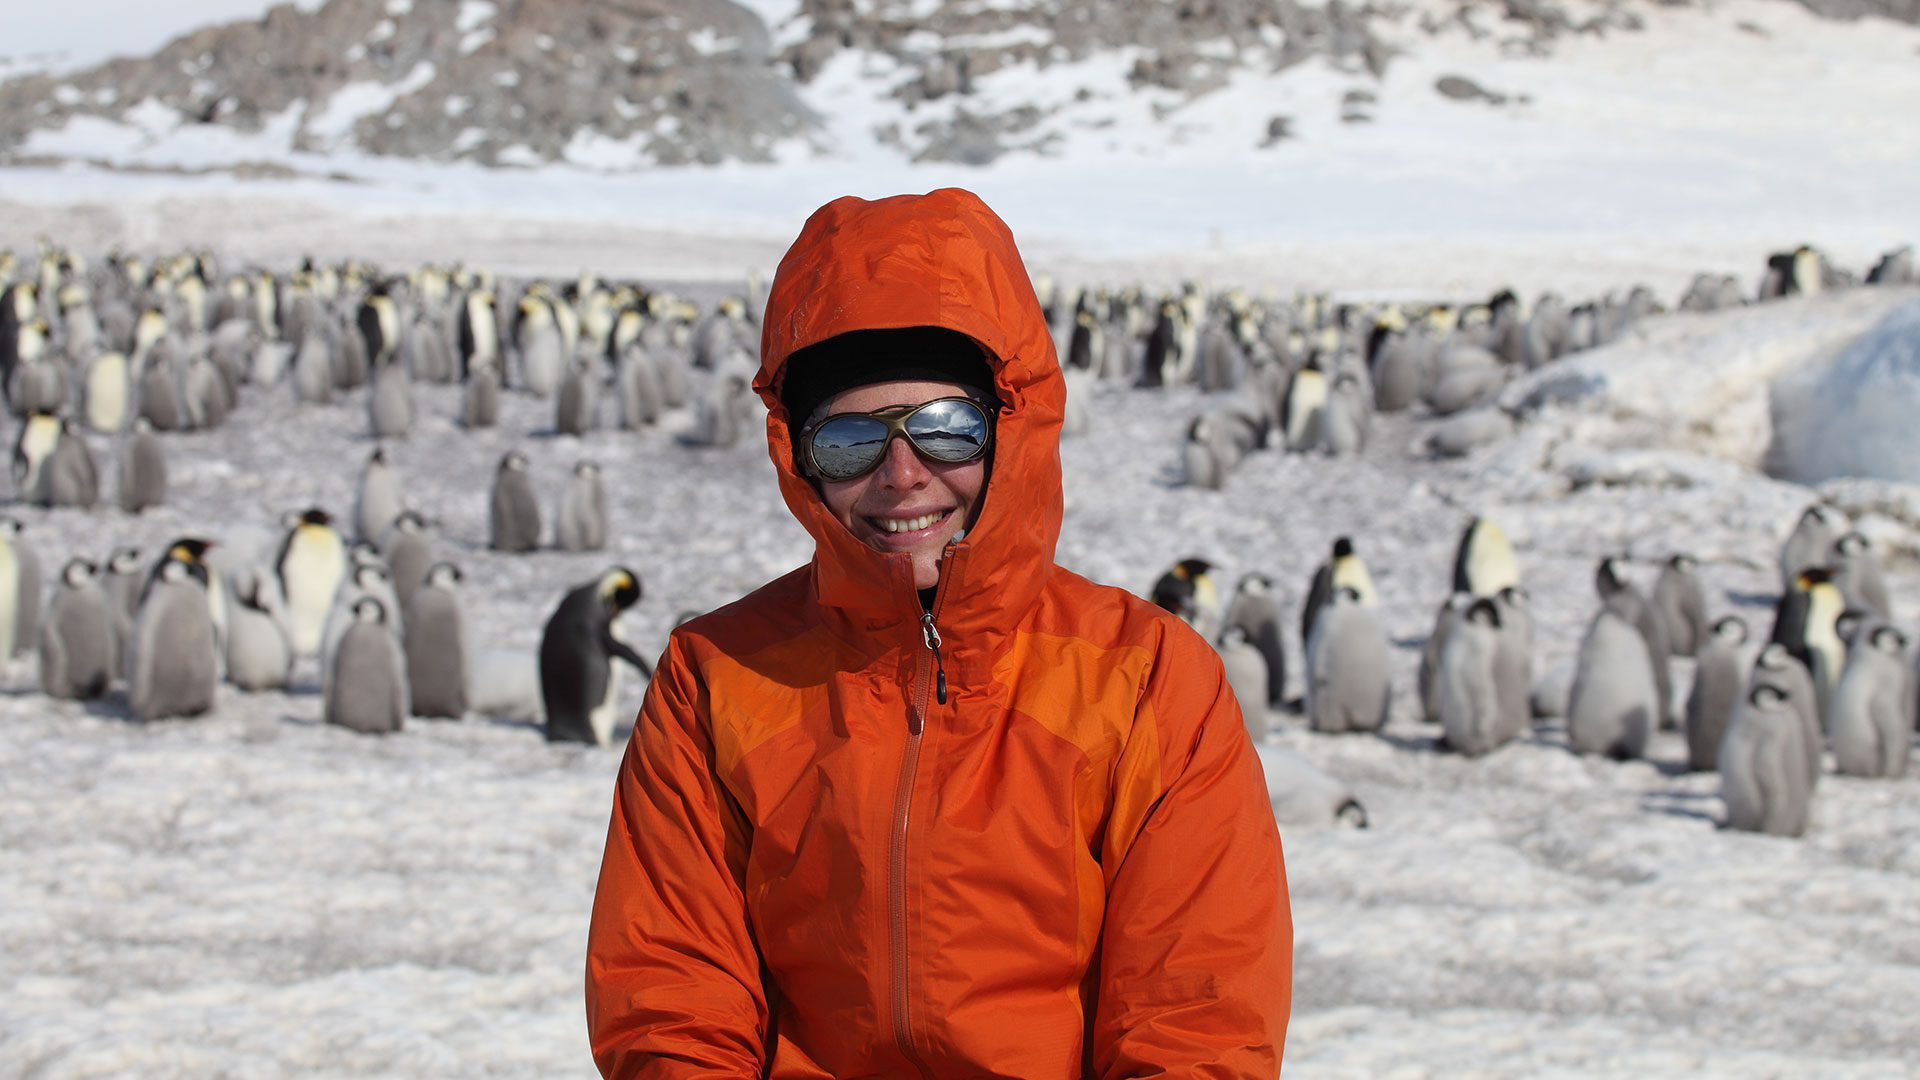 WHOI associate scientist and seabird ecologist Stephanie Jenouvrier working out in the field with emperor penguins. Research from penguin scientists is key to informing policy around much-needed protections for the emperor penguin.